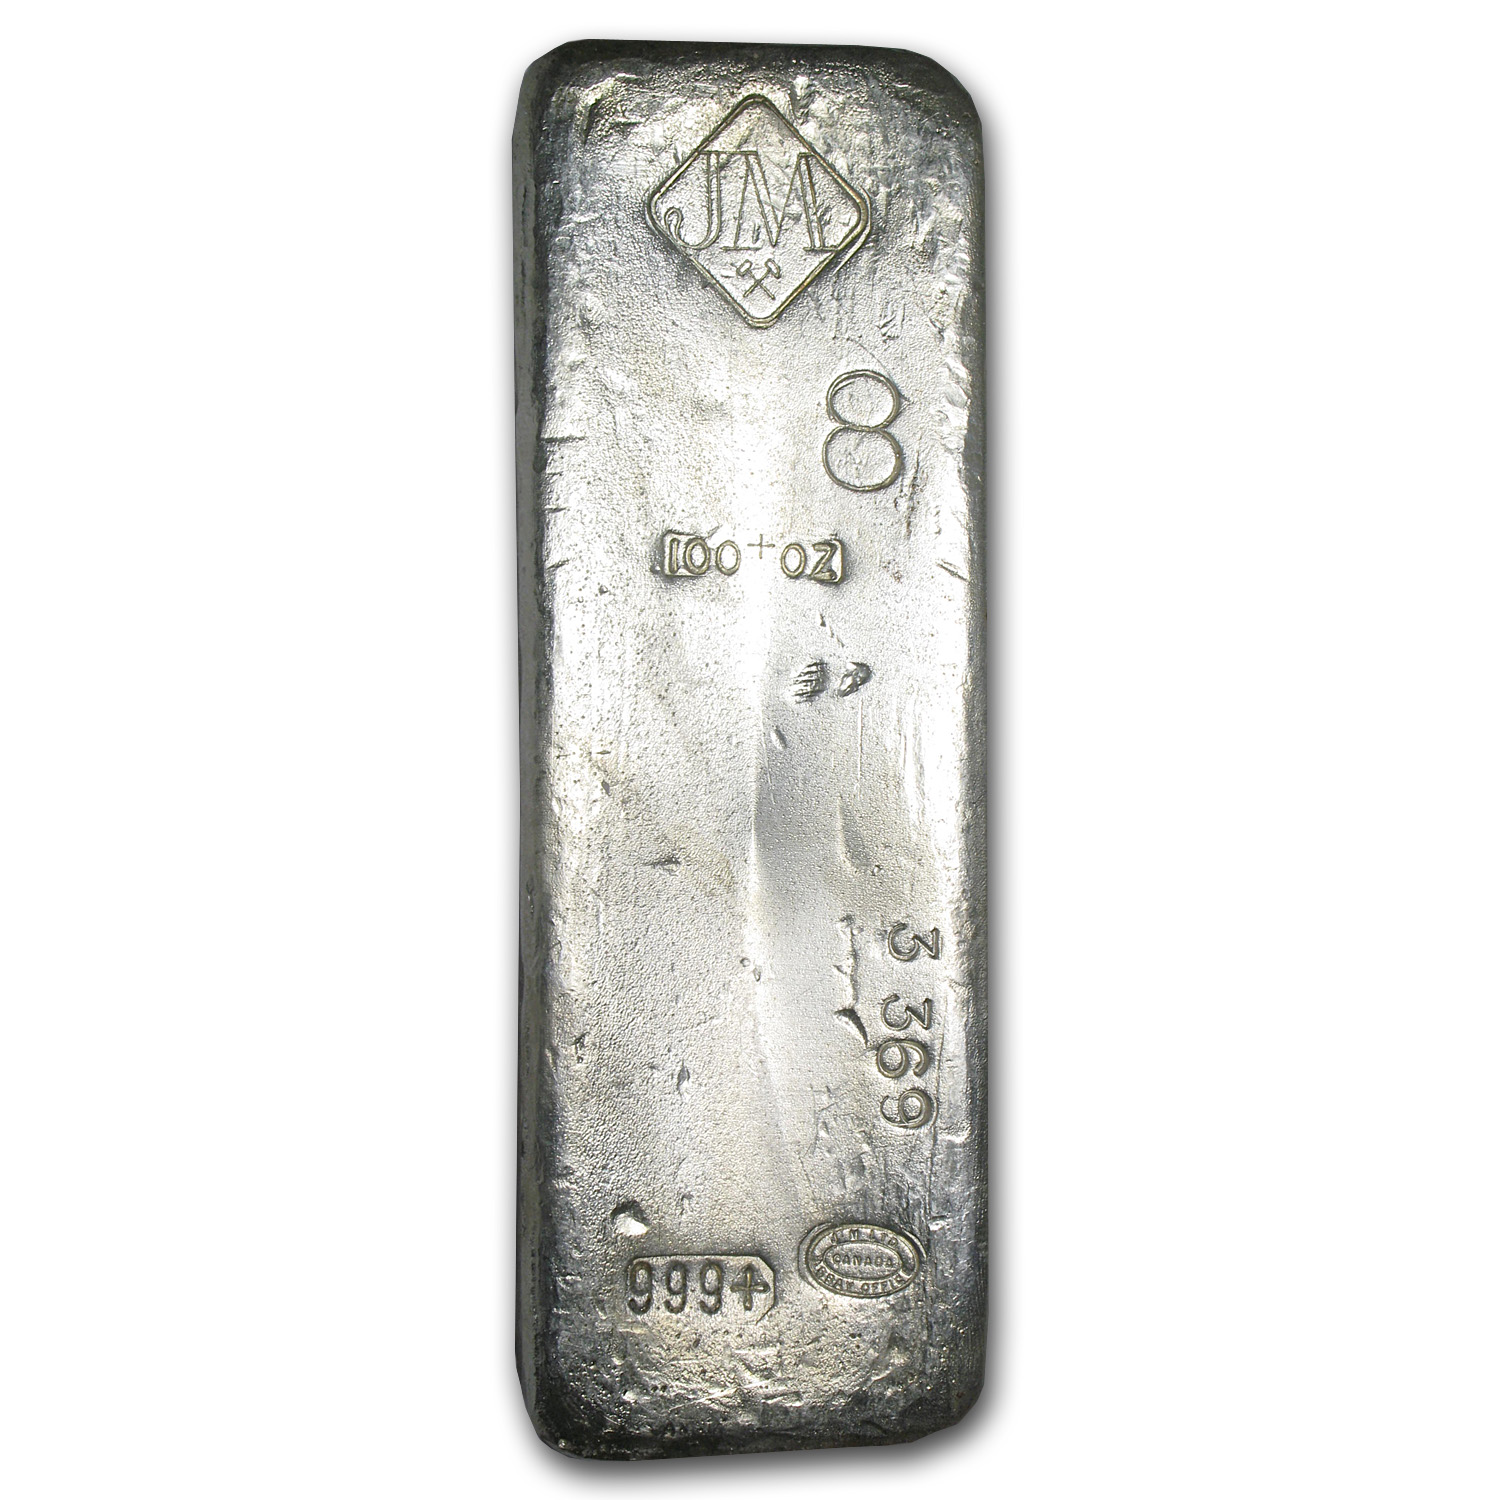 100 oz Silver Bars - Johnson Matthey (Vintage/Canada)